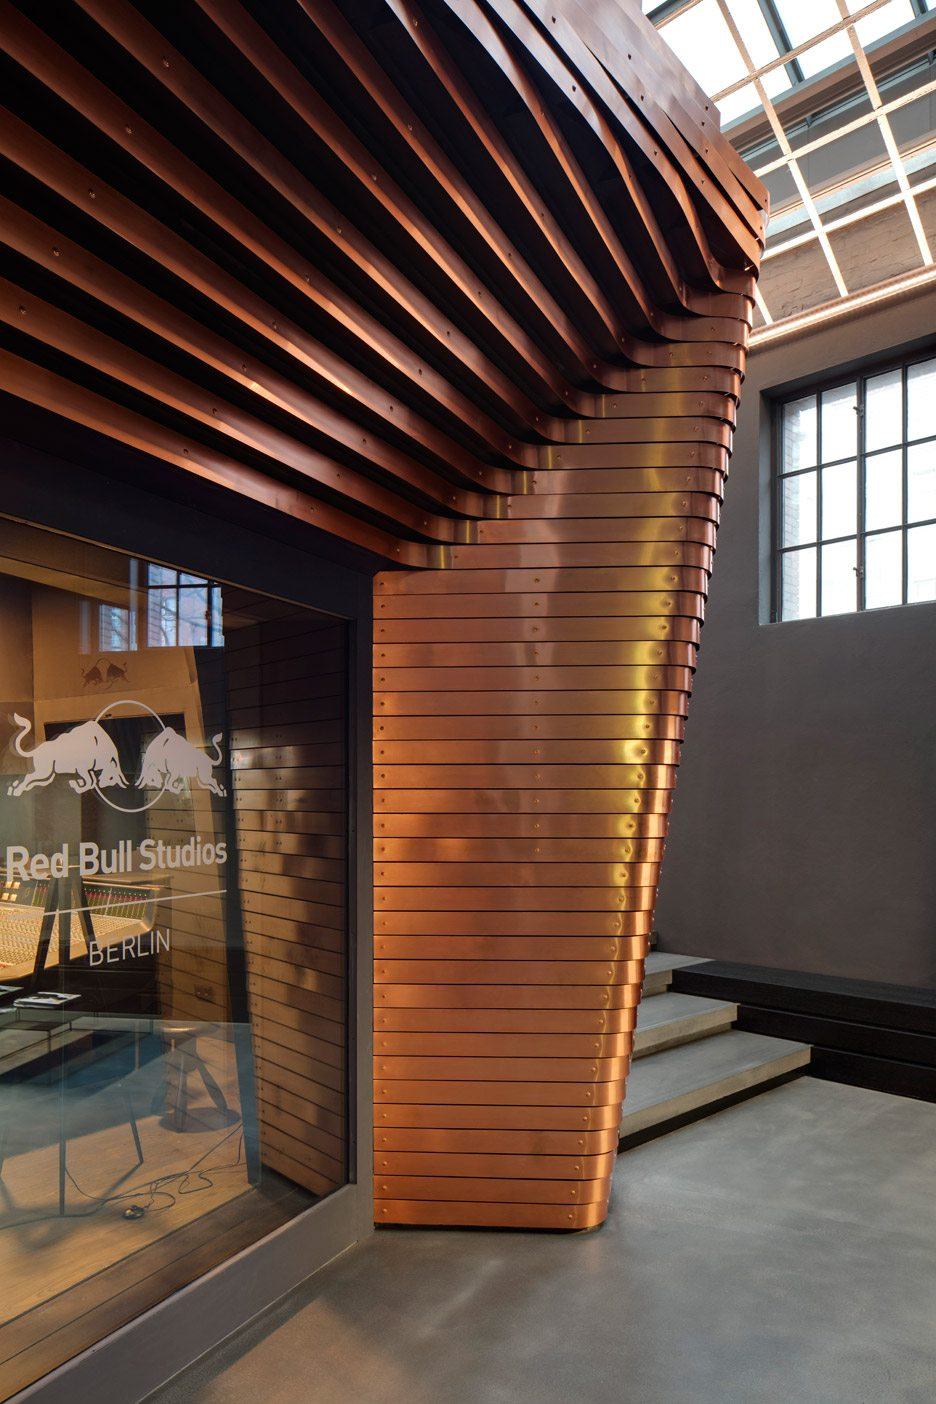 Optimist Design Creates Red Bull Music Studio Inside